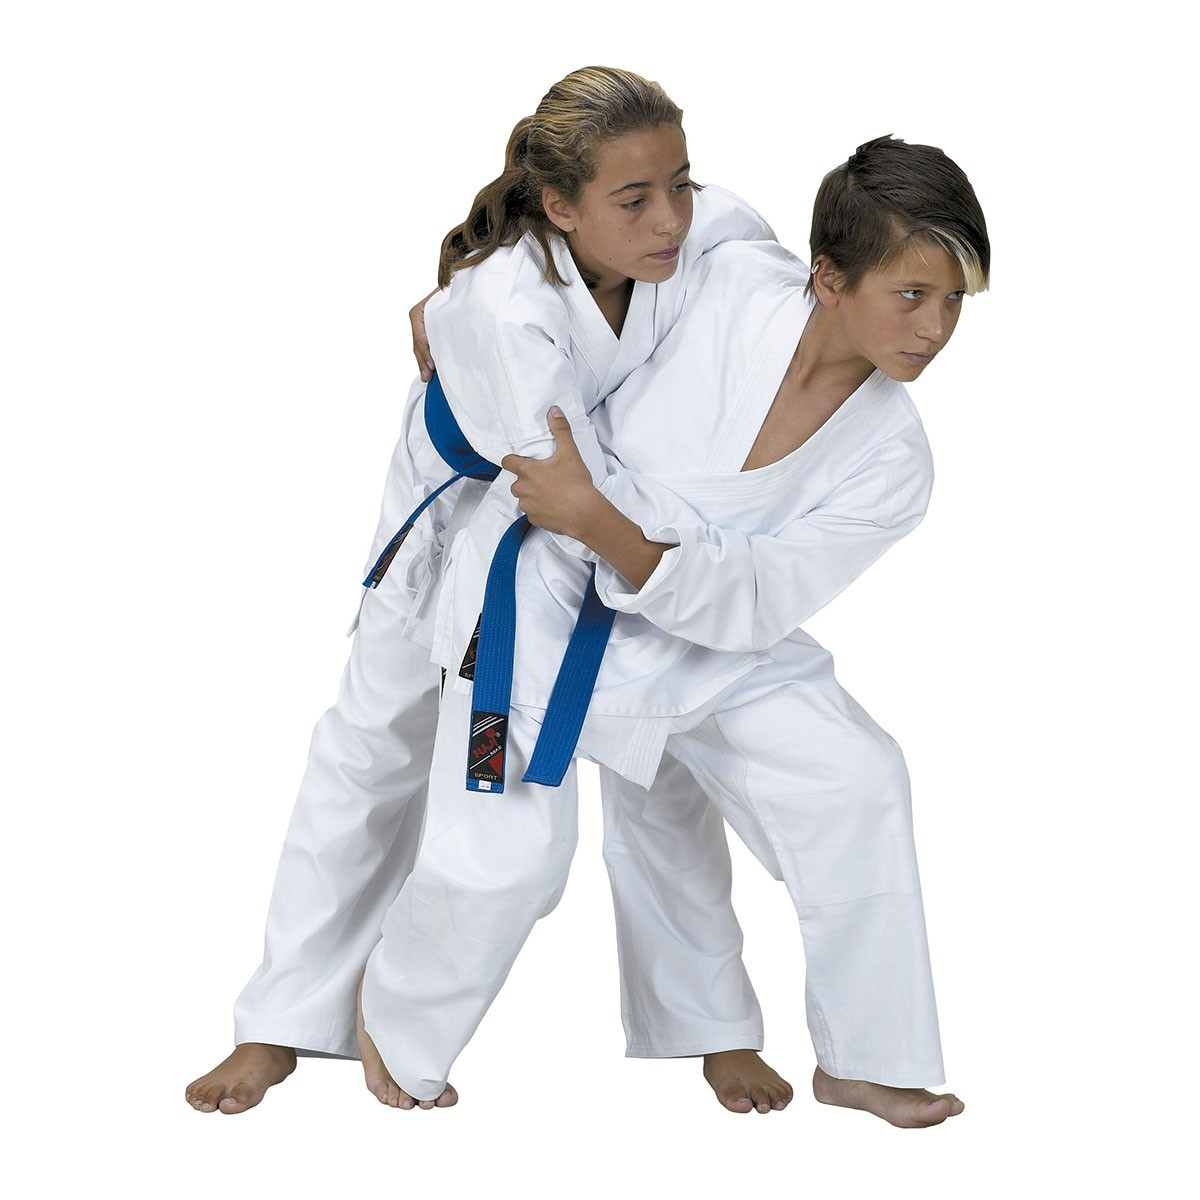 510 Judo - Martial arts classes for kids and adults in San ...